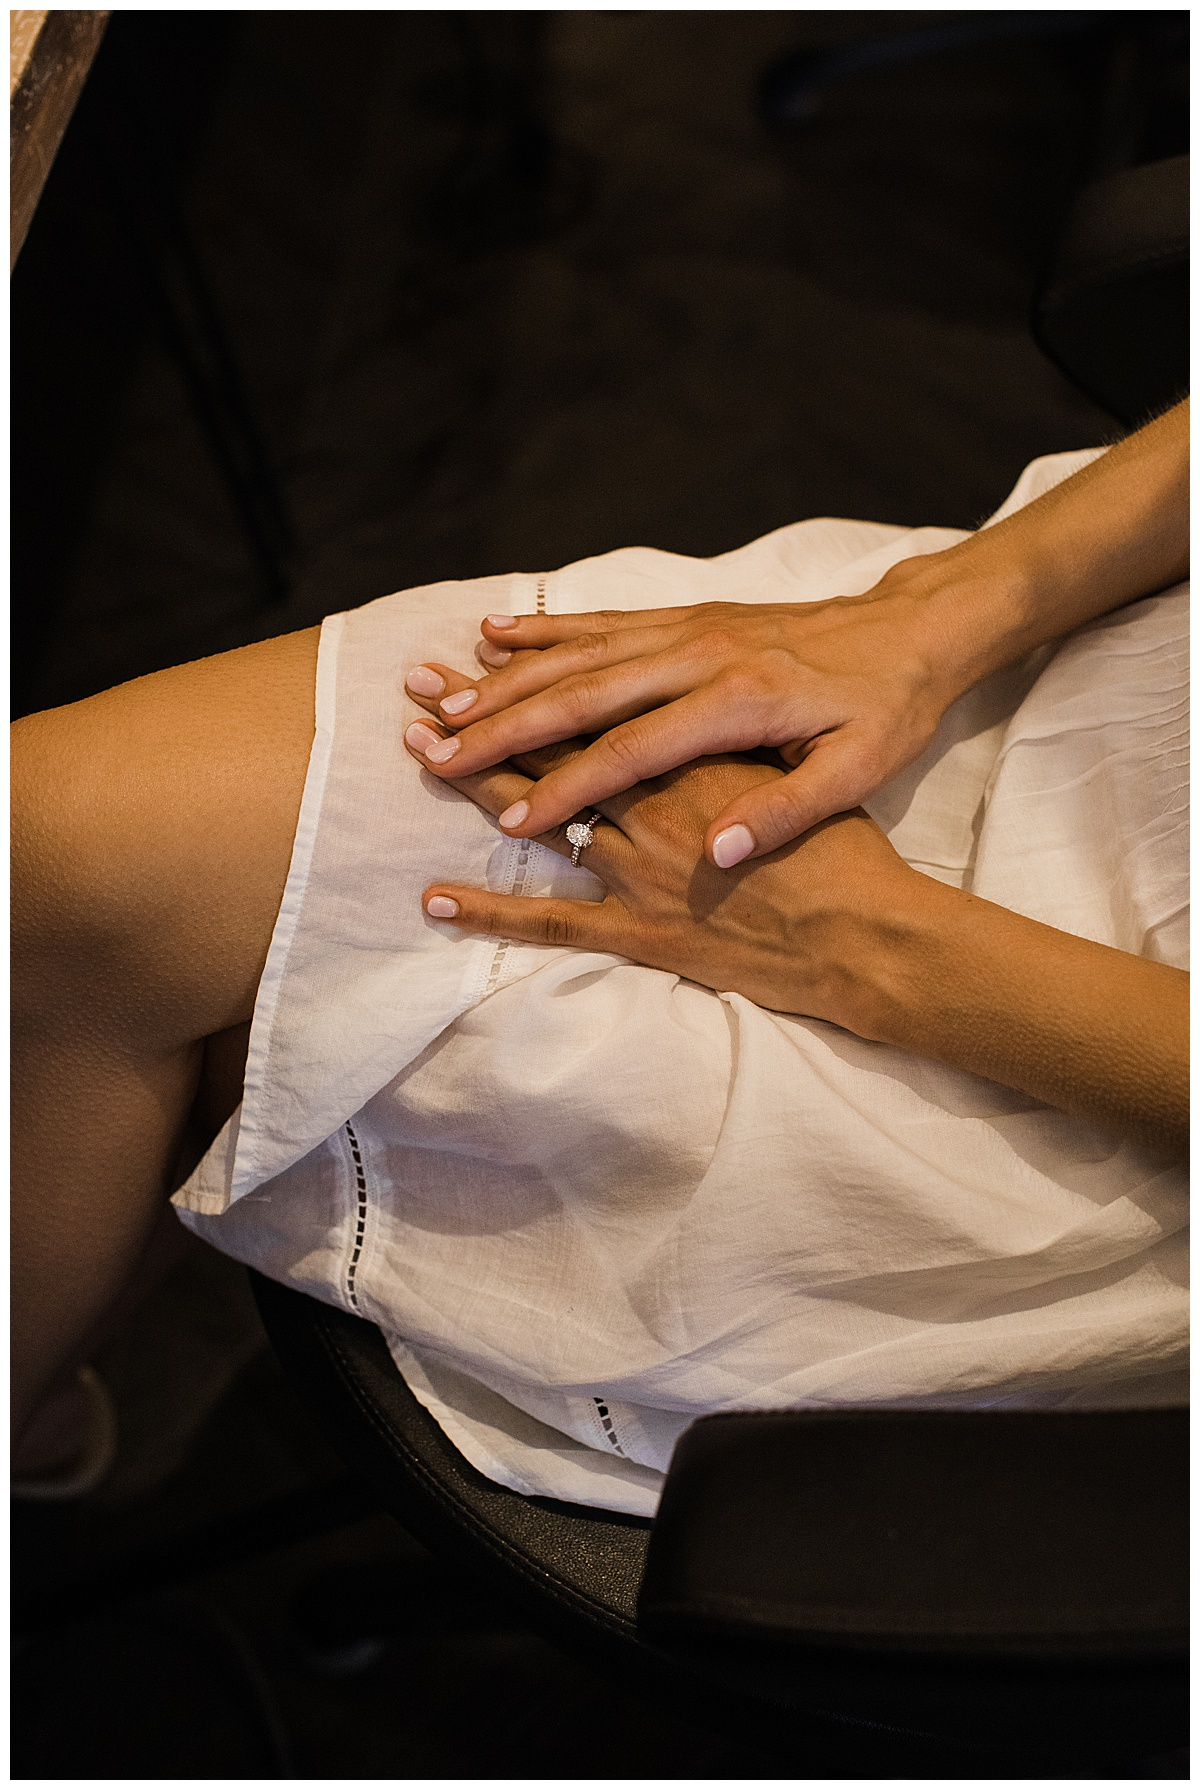 Bride's hands folded in lap while getting ready  Ontario Wedding  Toronto Wedding Photographer  Ontario Wedding Photographer  3photography